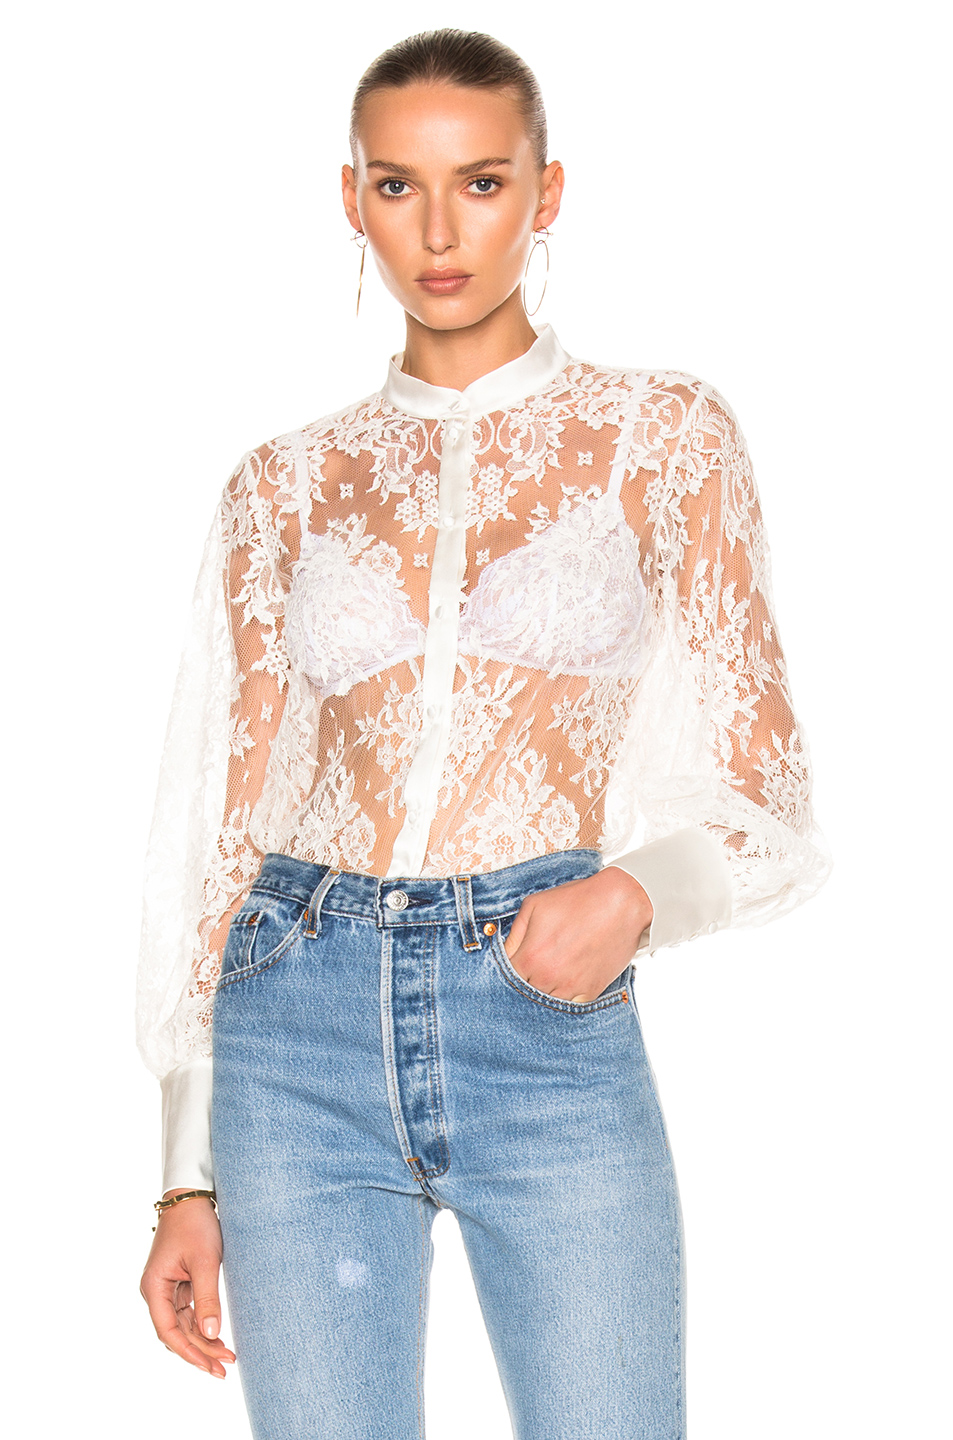 I.D. SARRIERI Lace Shirt Bodysuit in White